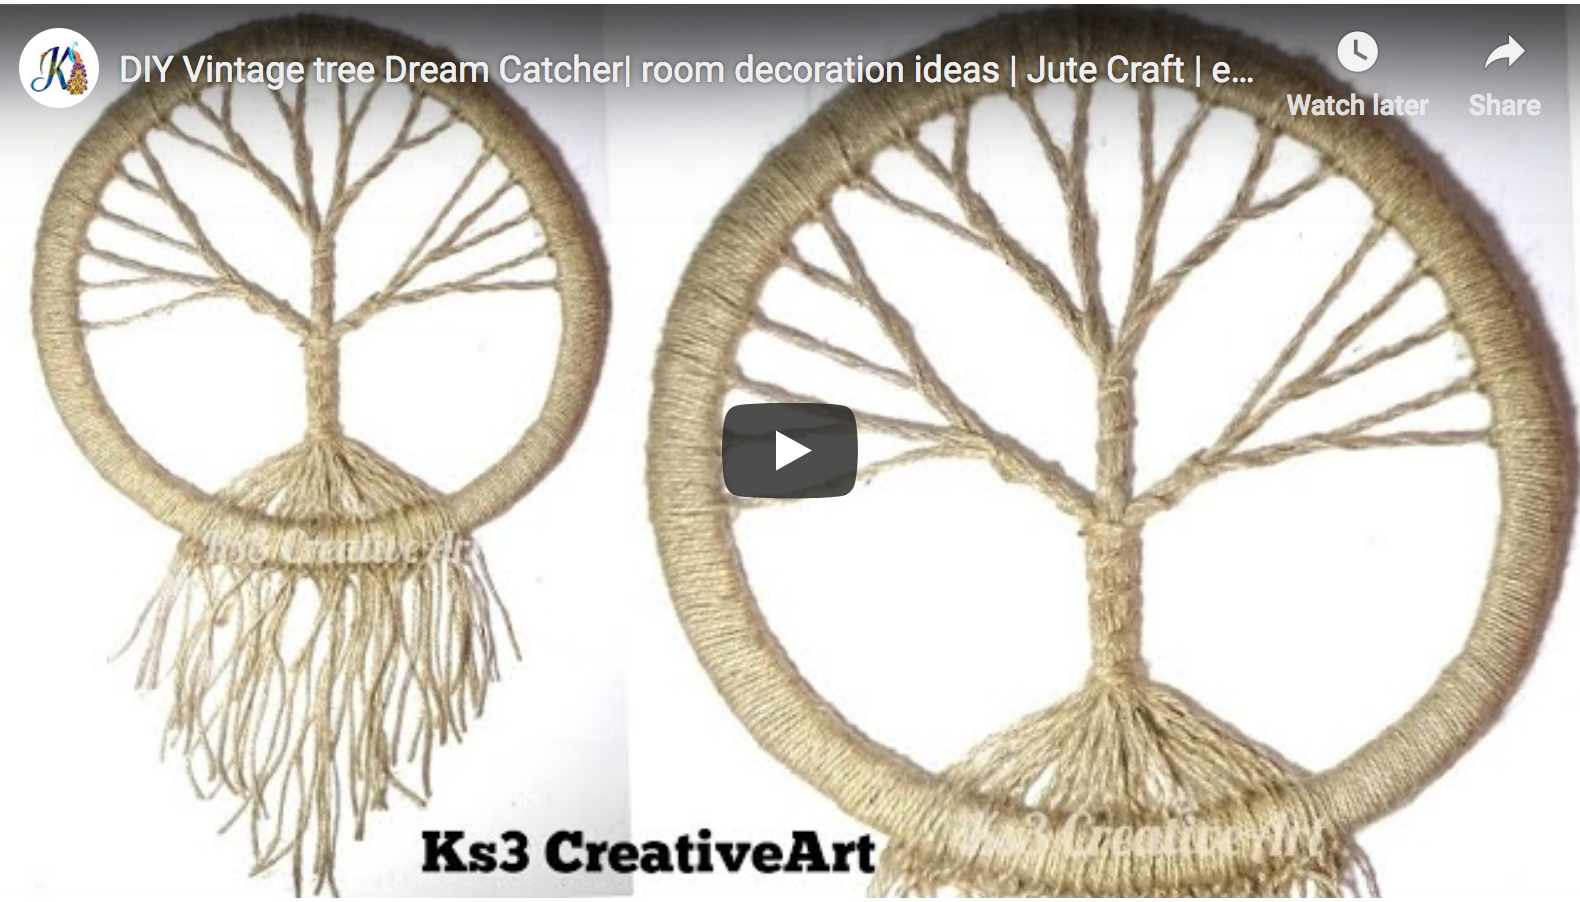 DIY Vintage tree Dream Catcher by Ks3 CreativeArt images